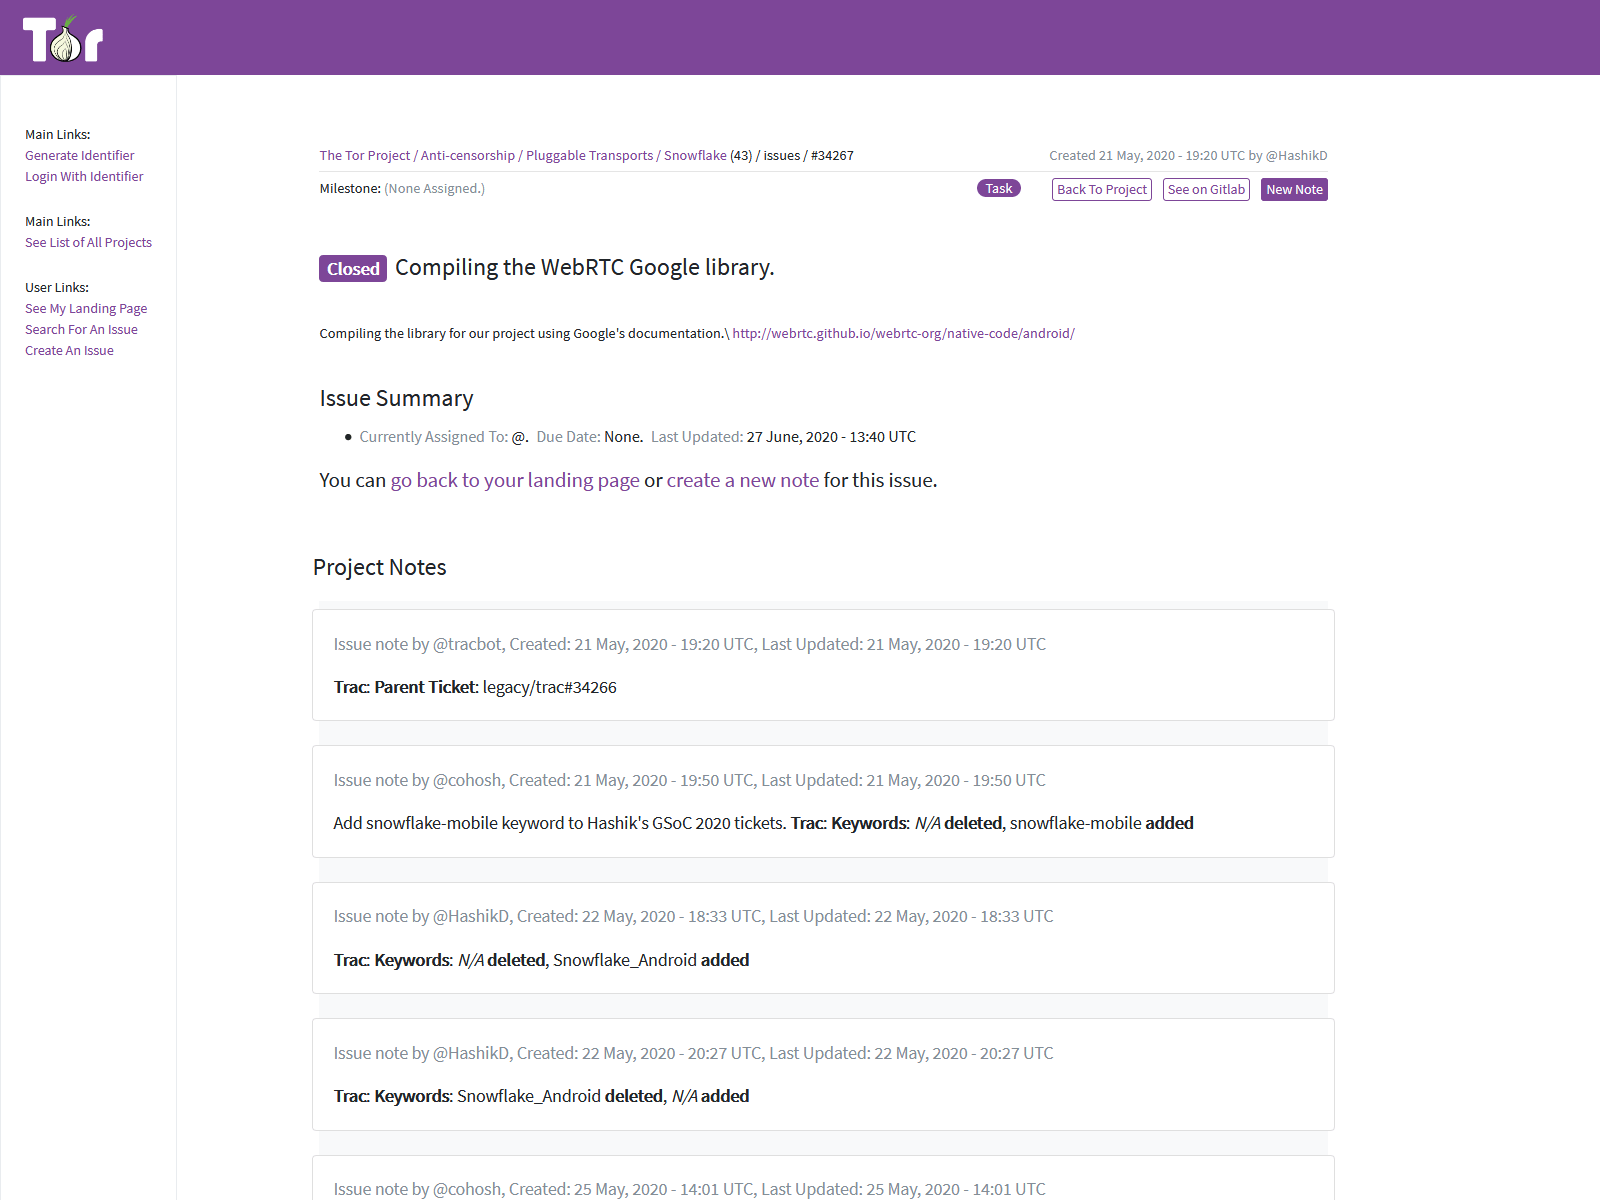 An example of a closed issue view. The top shows details about the issue from gitlab, including the namespace, issue number, assignee, milestones, labels, etc. This is followed by a detail summary and a list of project notes.